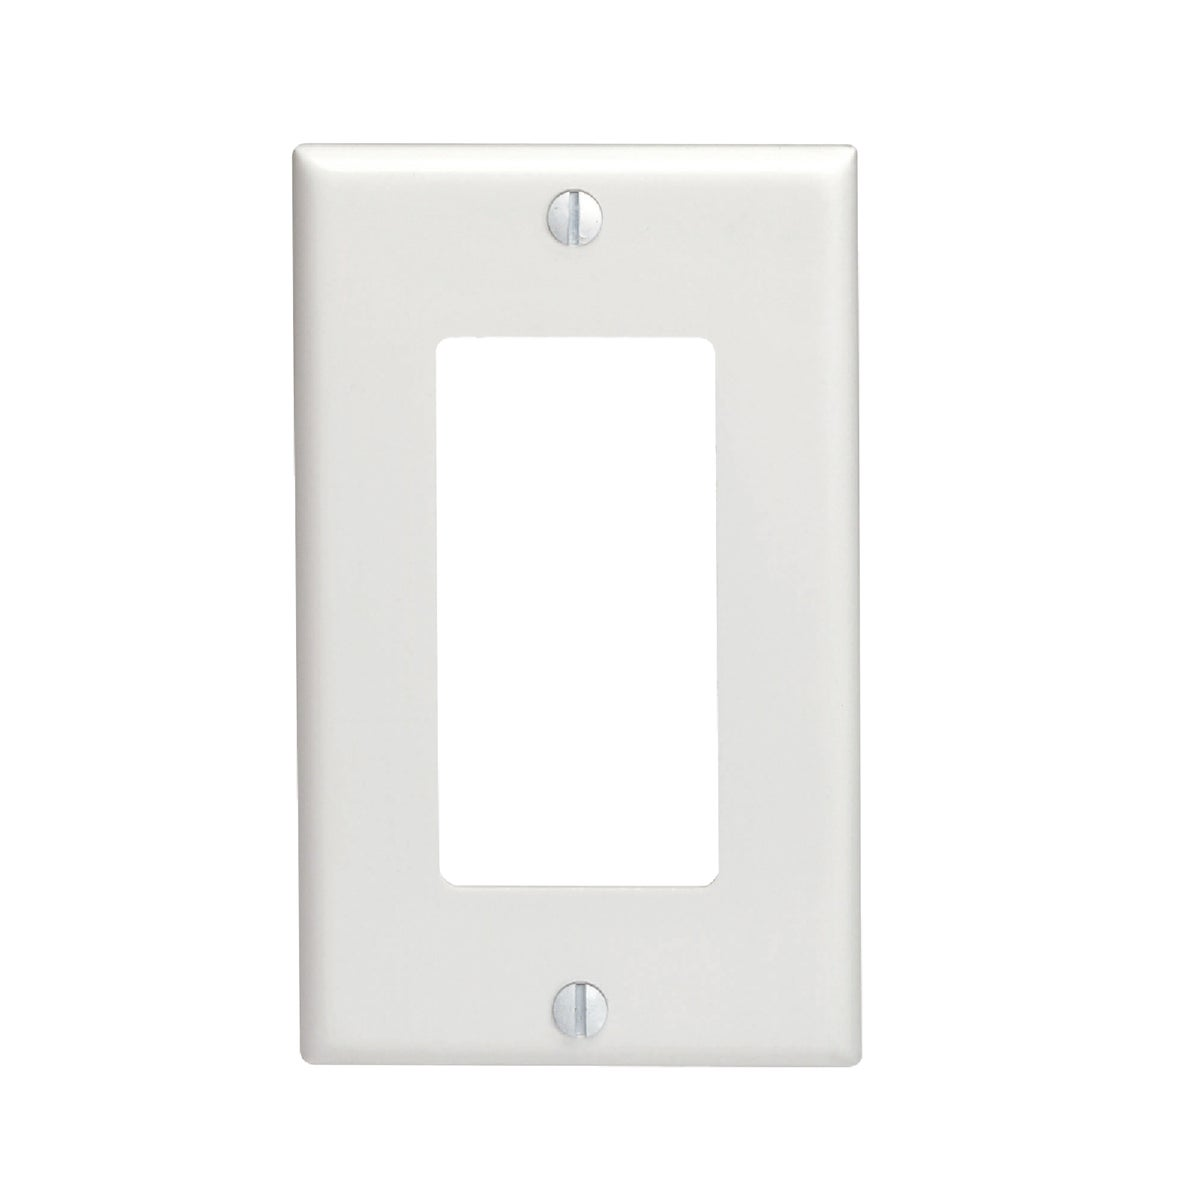 WHT WALL PLATE